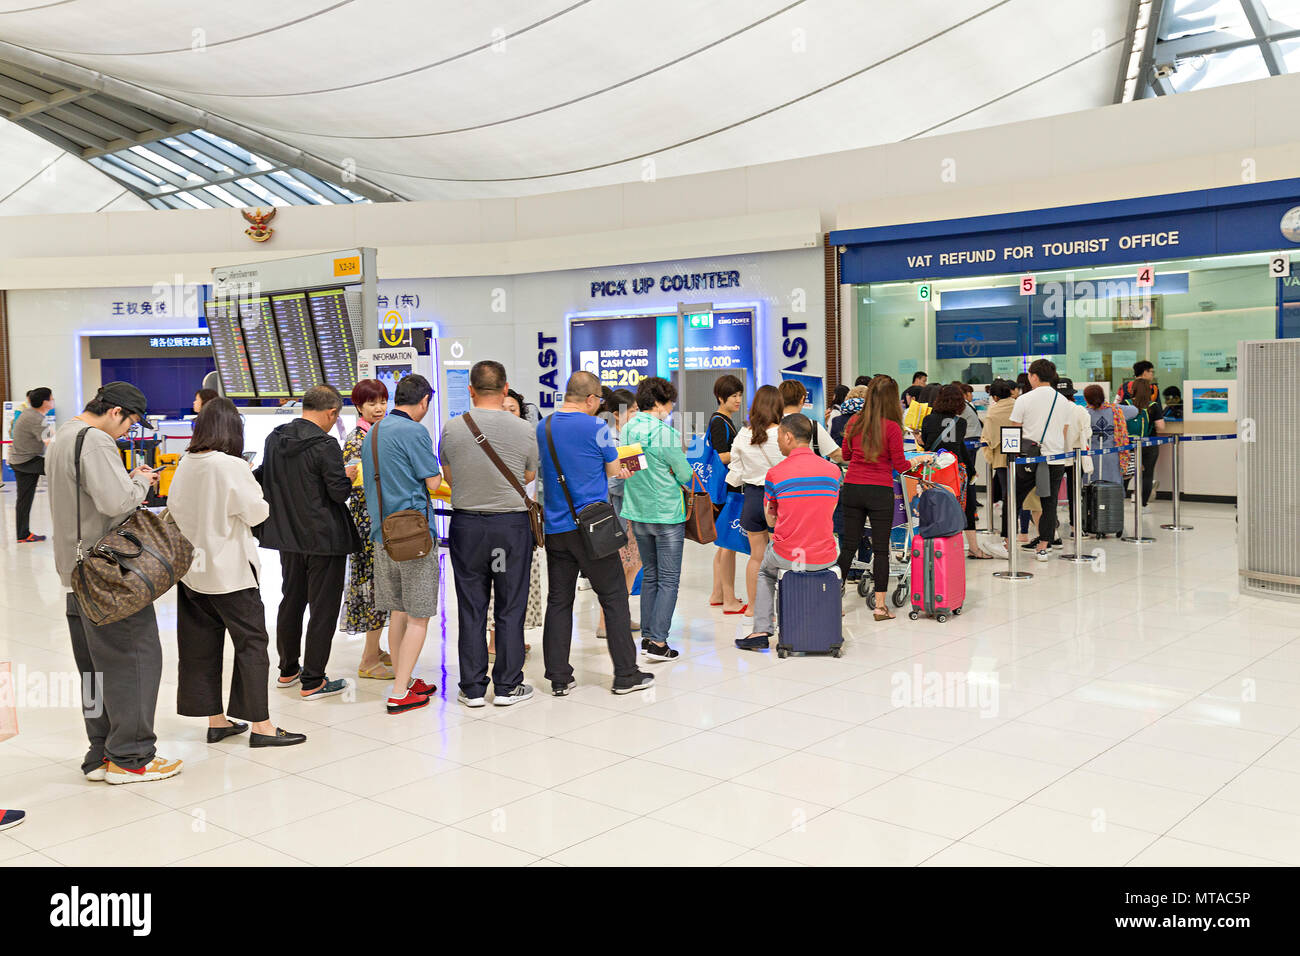 Queue of people at the VAT refund tourist office at airport, Bangkok, Thailand - Stock Image